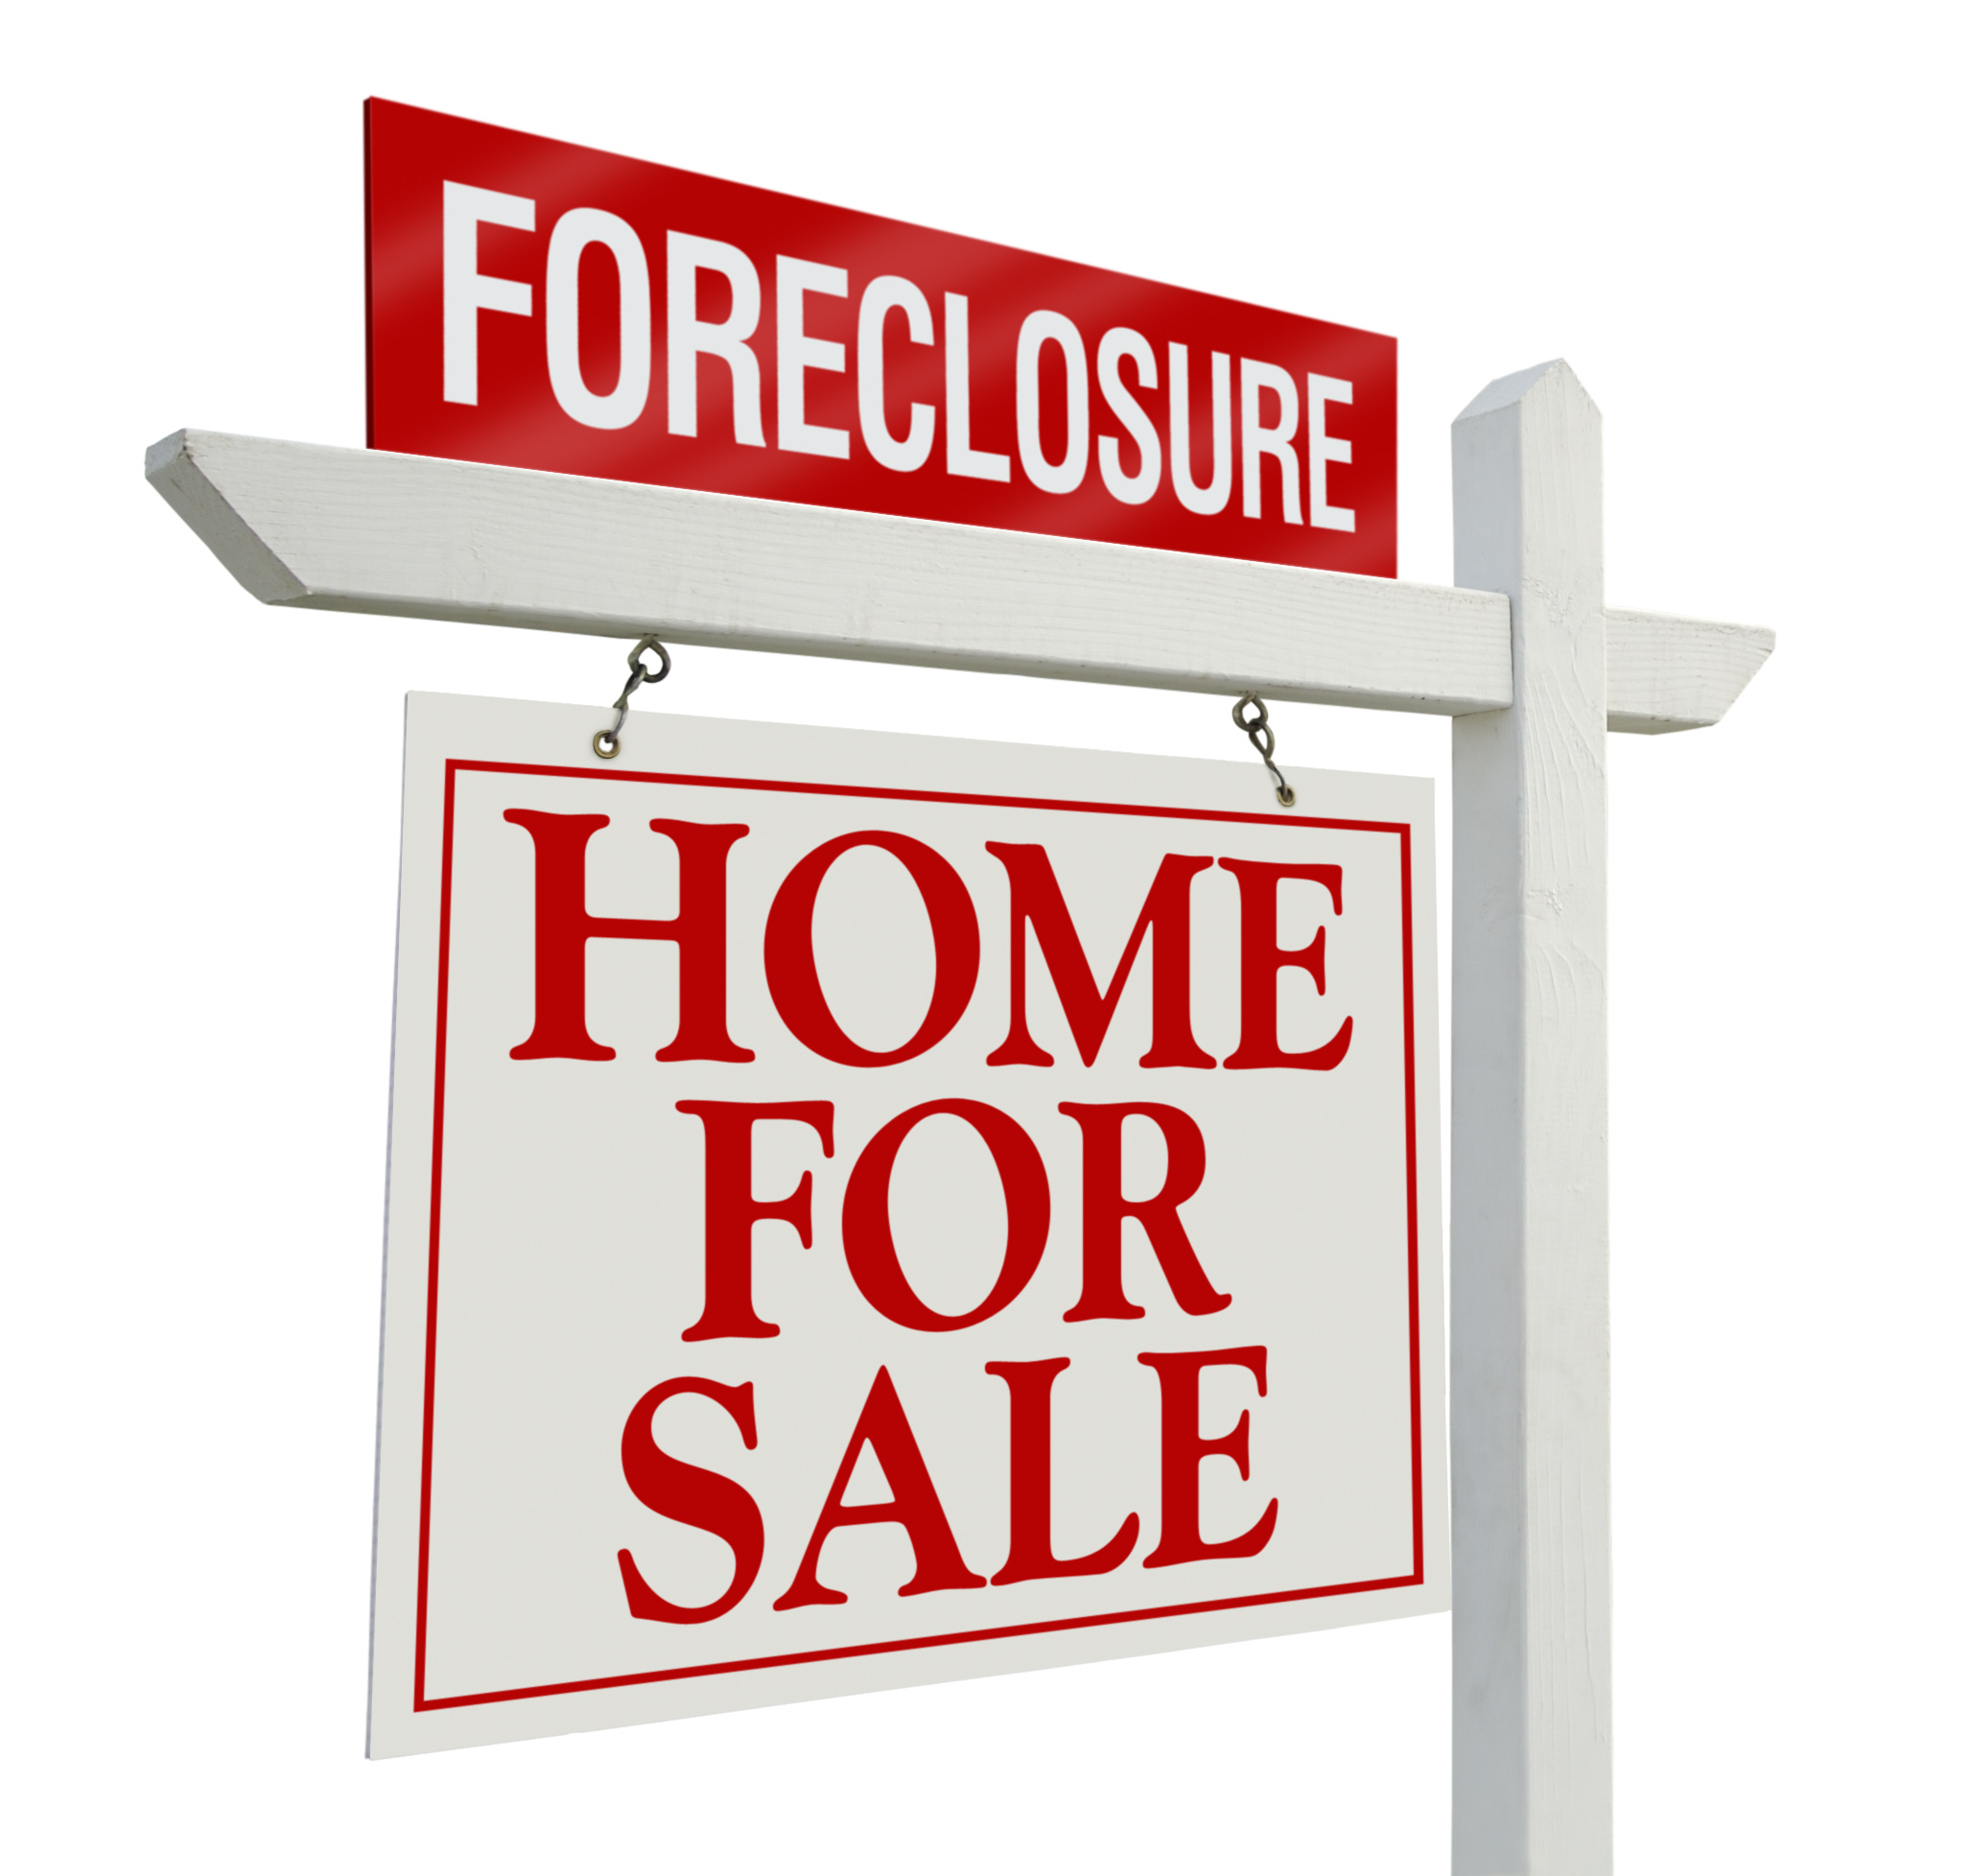 An Alternative to Foreclosure